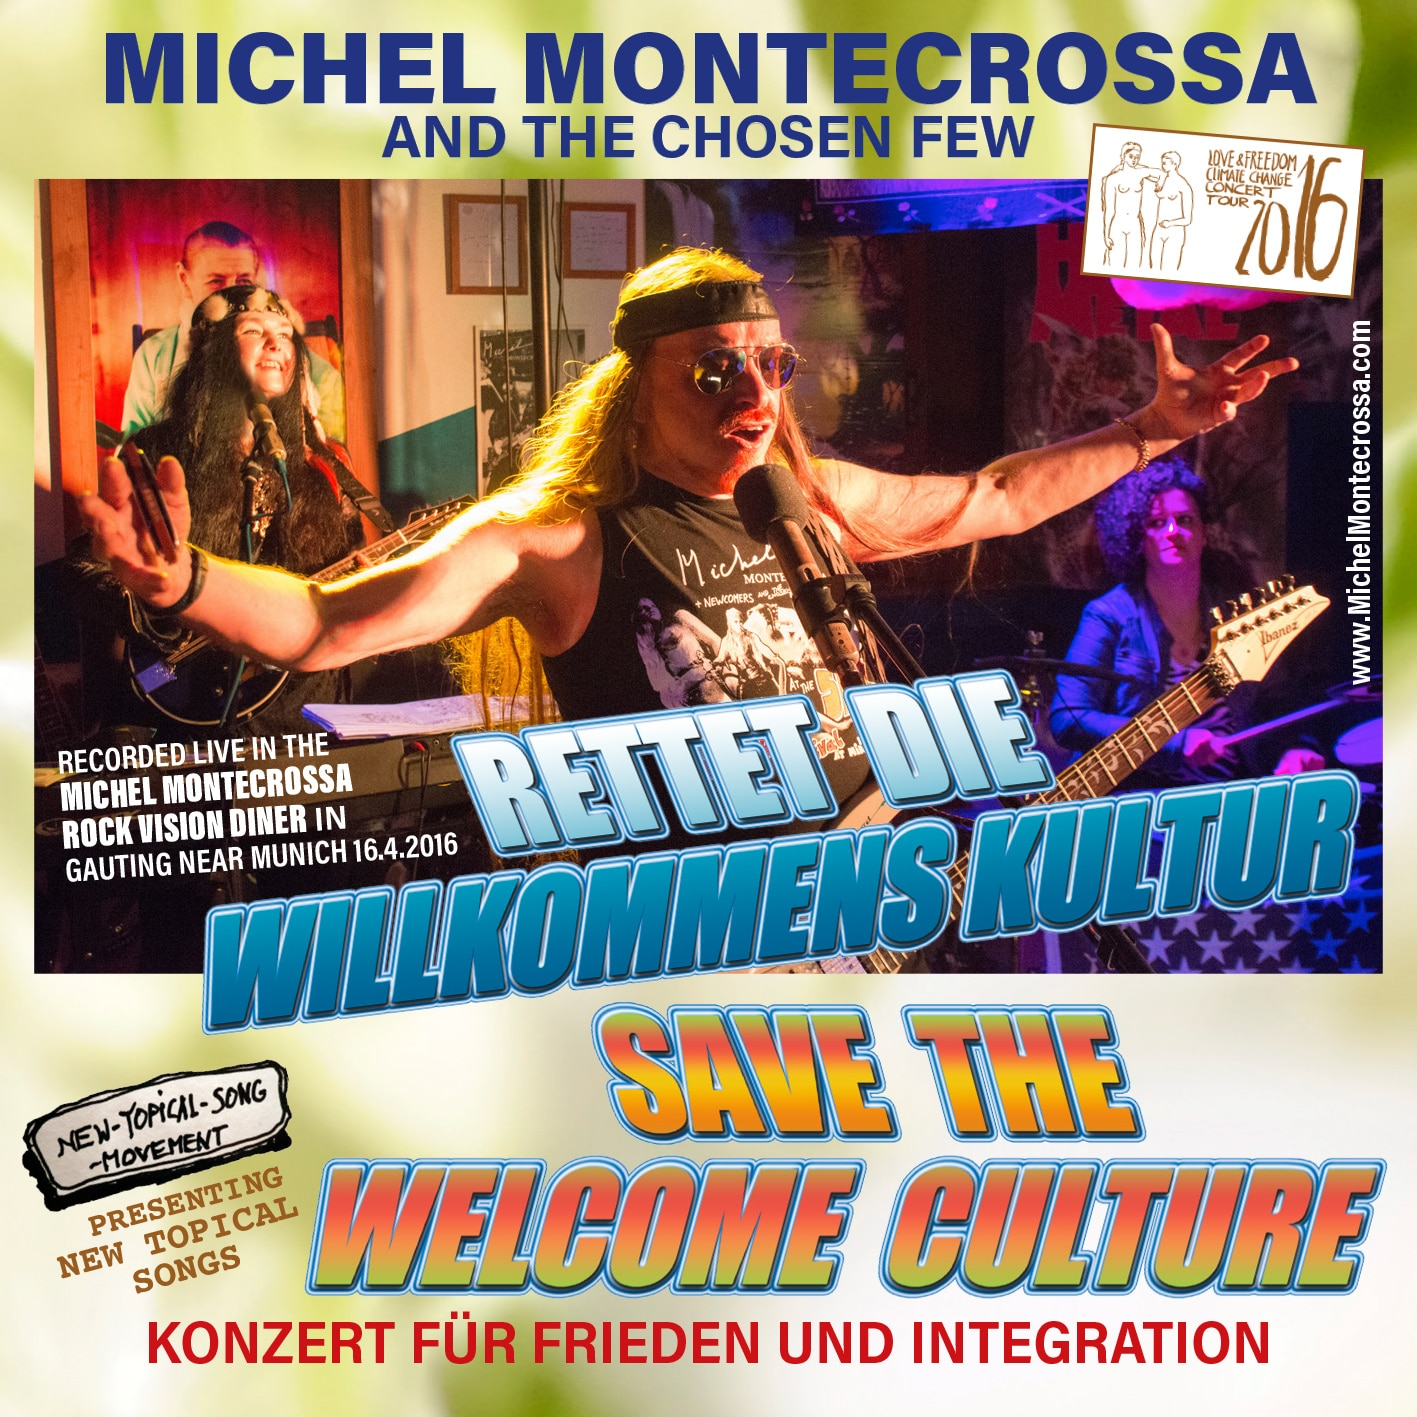 Rettet die Willkommens Kultur - Save The Welcome Culture Concert